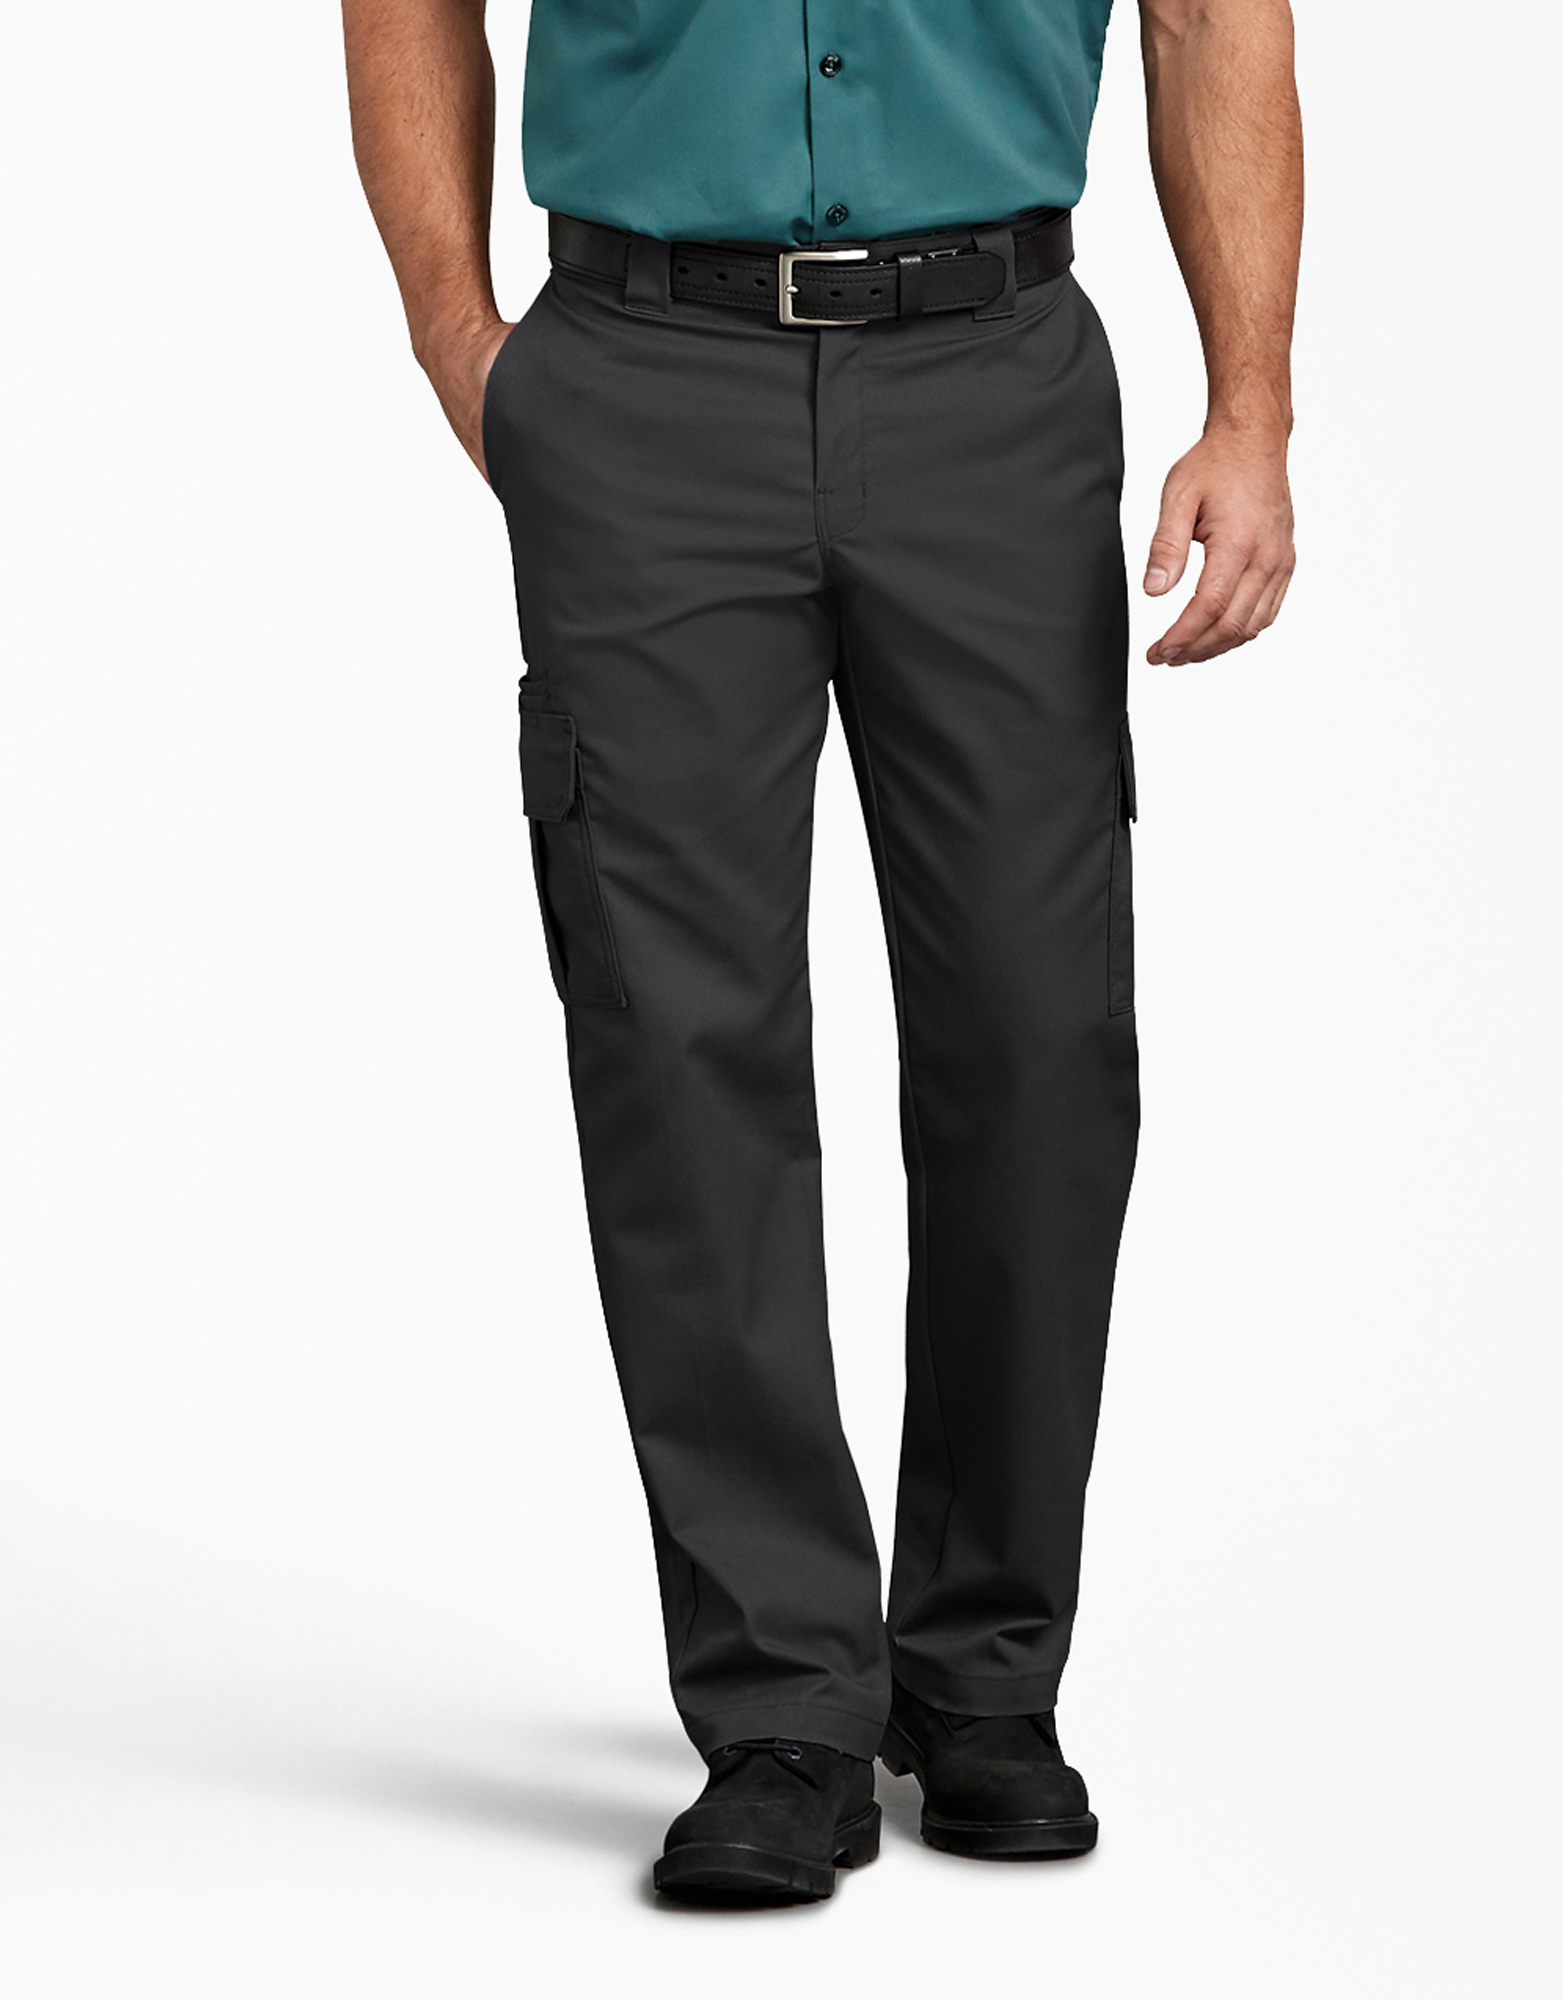 FLEX Regular Fit Straight Leg Cargo Pants - Black (BK)